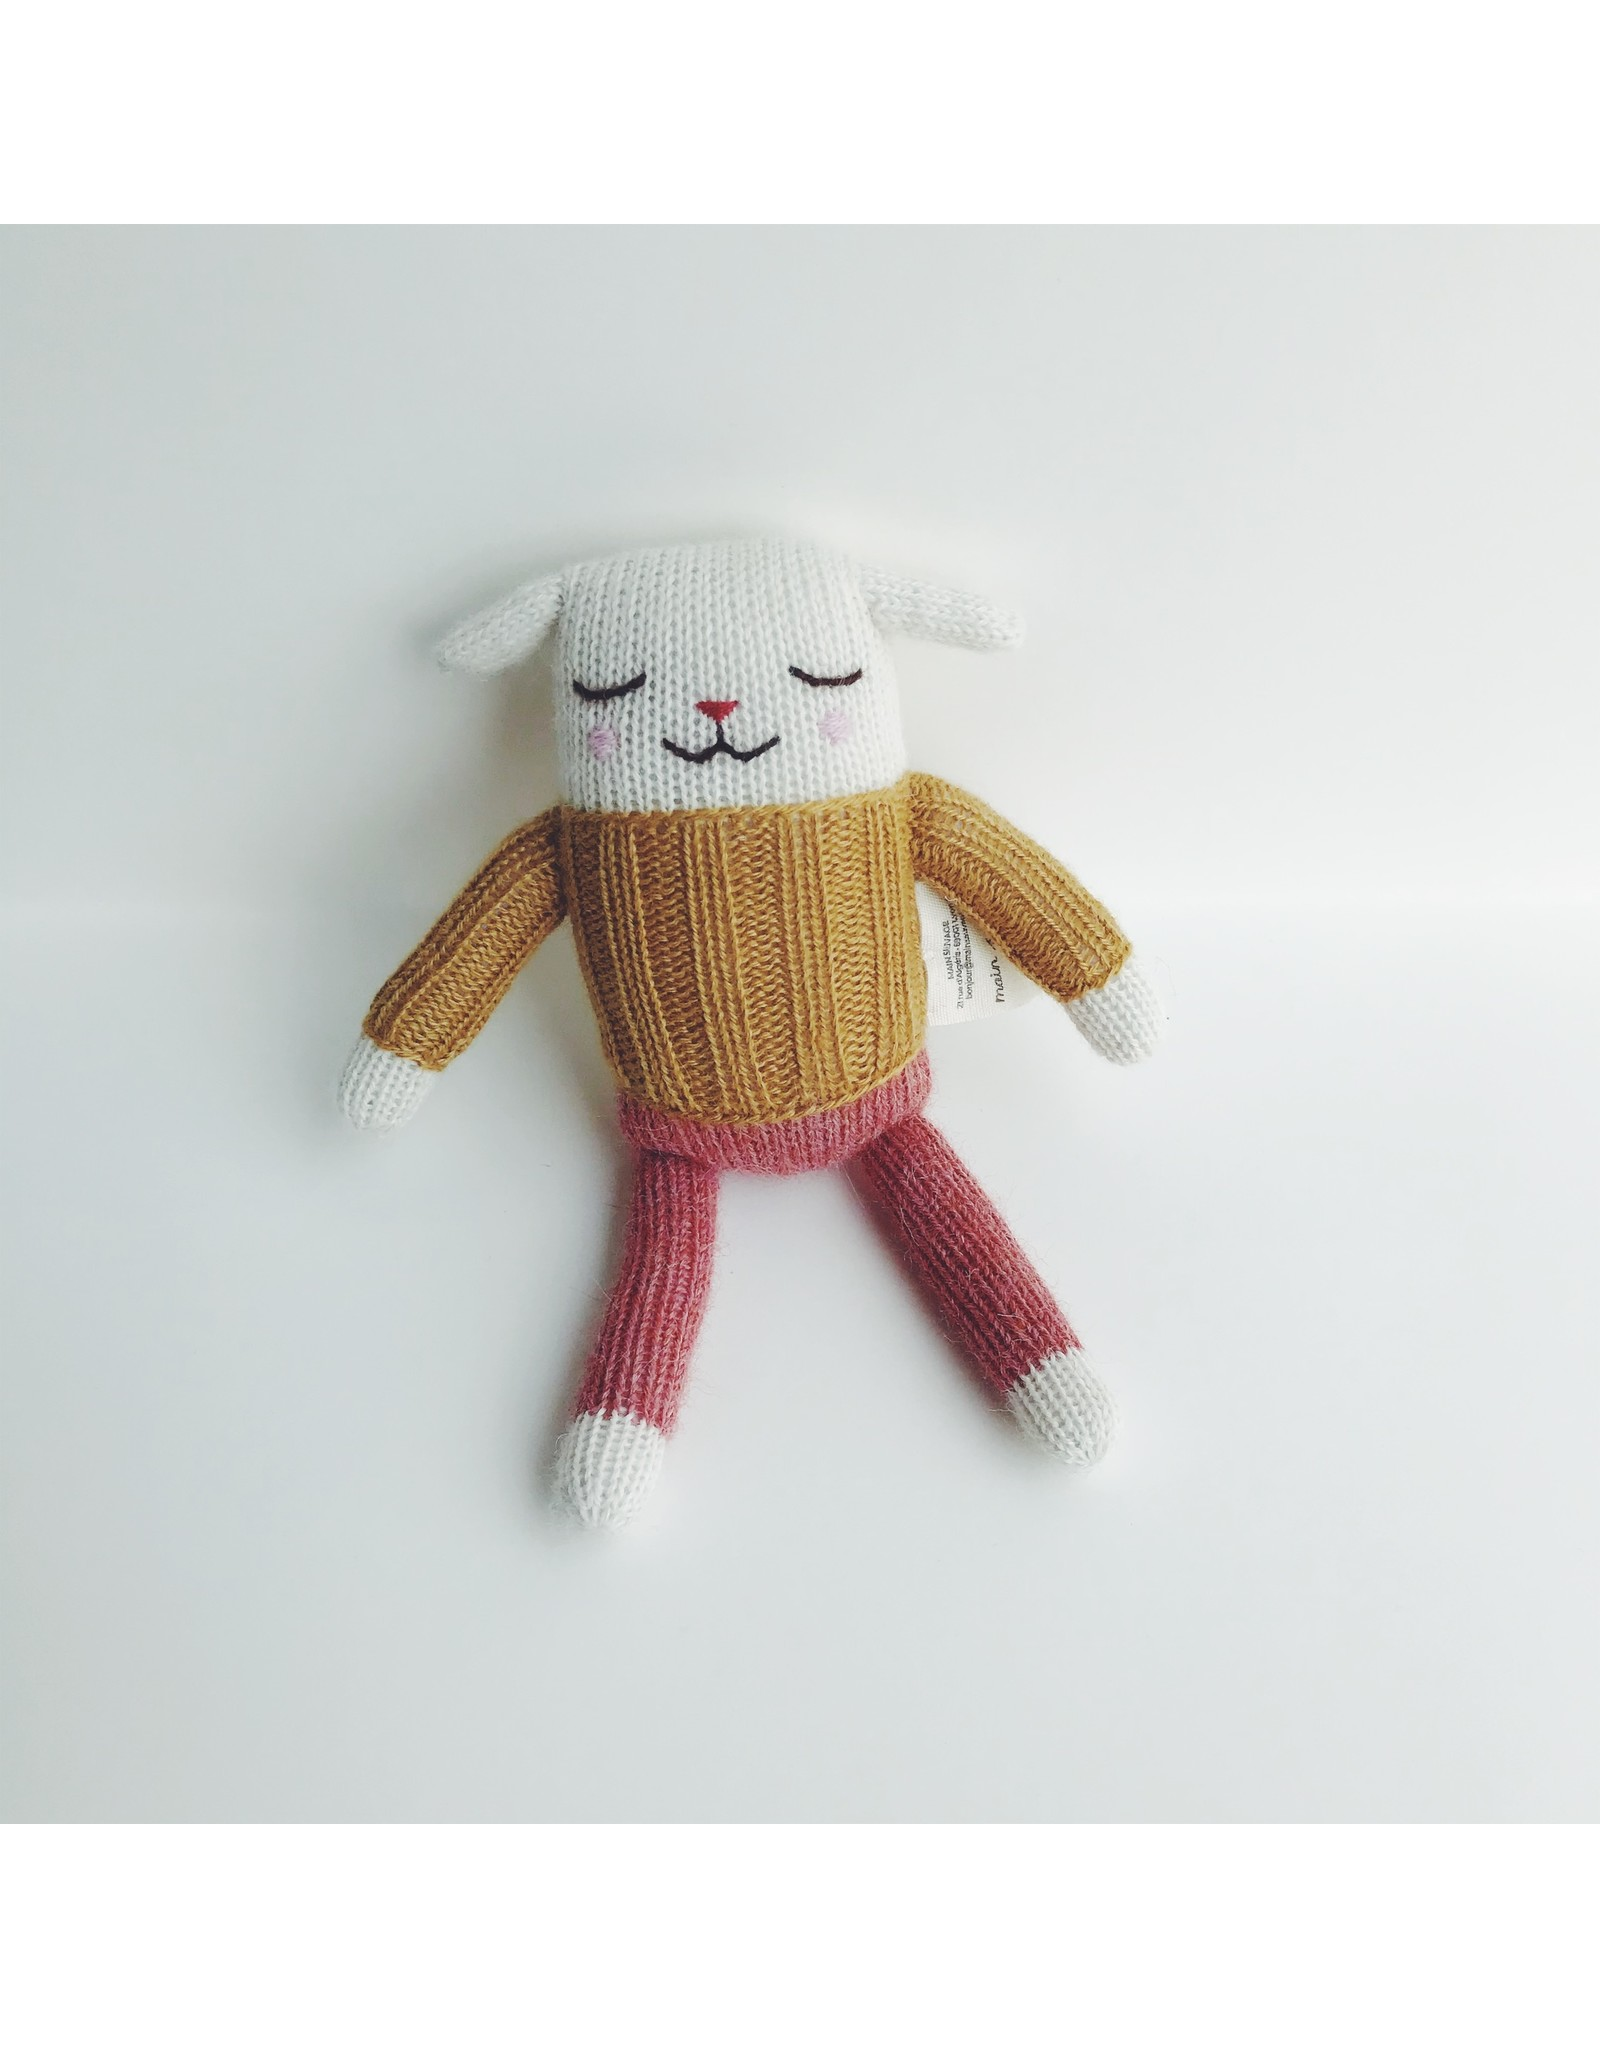 Handknitted toys